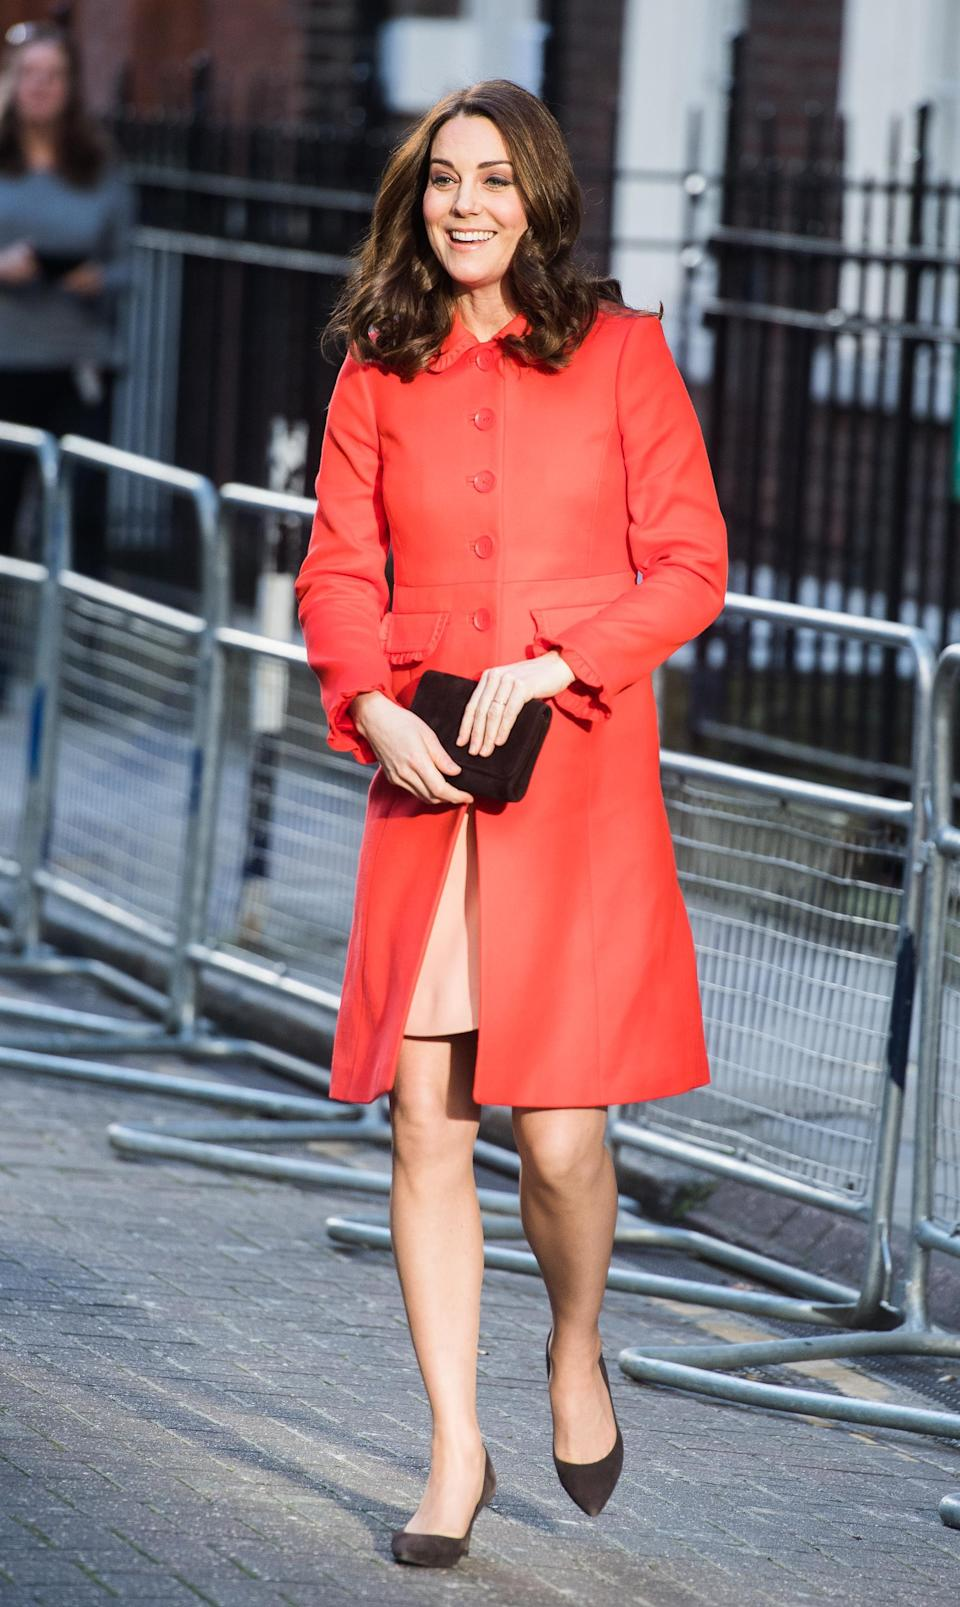 <p><strong>The occassion:</strong> A visit to Great Ormond Street Hospital in London. <br><strong>The look:</strong> A bright red coat by Boden with Annoushka Baroque drop earrings.<br>[Photo: Getty] </p>